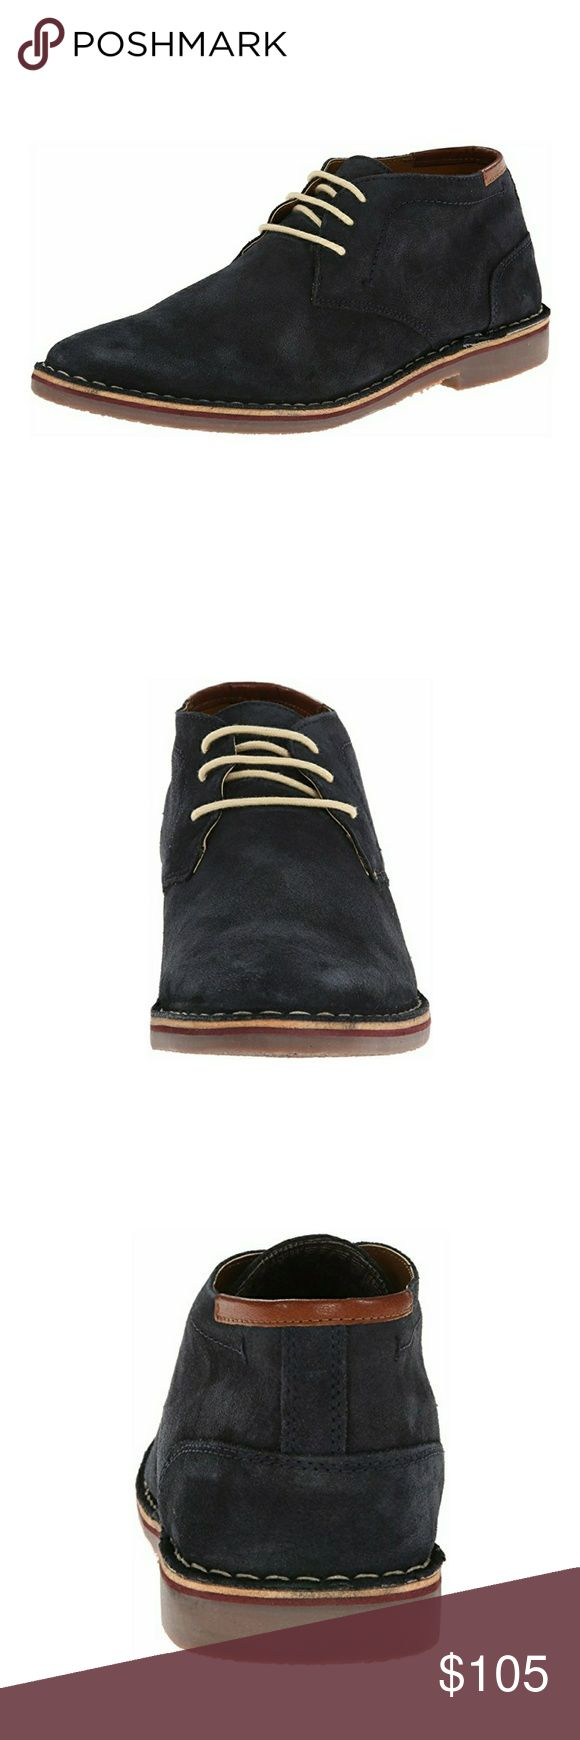 "'Boston' Men's Suede Chukka Boot Navy Suede Imported Synthetic sole Shaft measures approximately 3.5"" from arch Heel measures approximately 1"" Chukka boot in low-cut profile featuring three blind eyelets and striped midsole Kenneth Cole Reaction Shoes Chukka Boots"